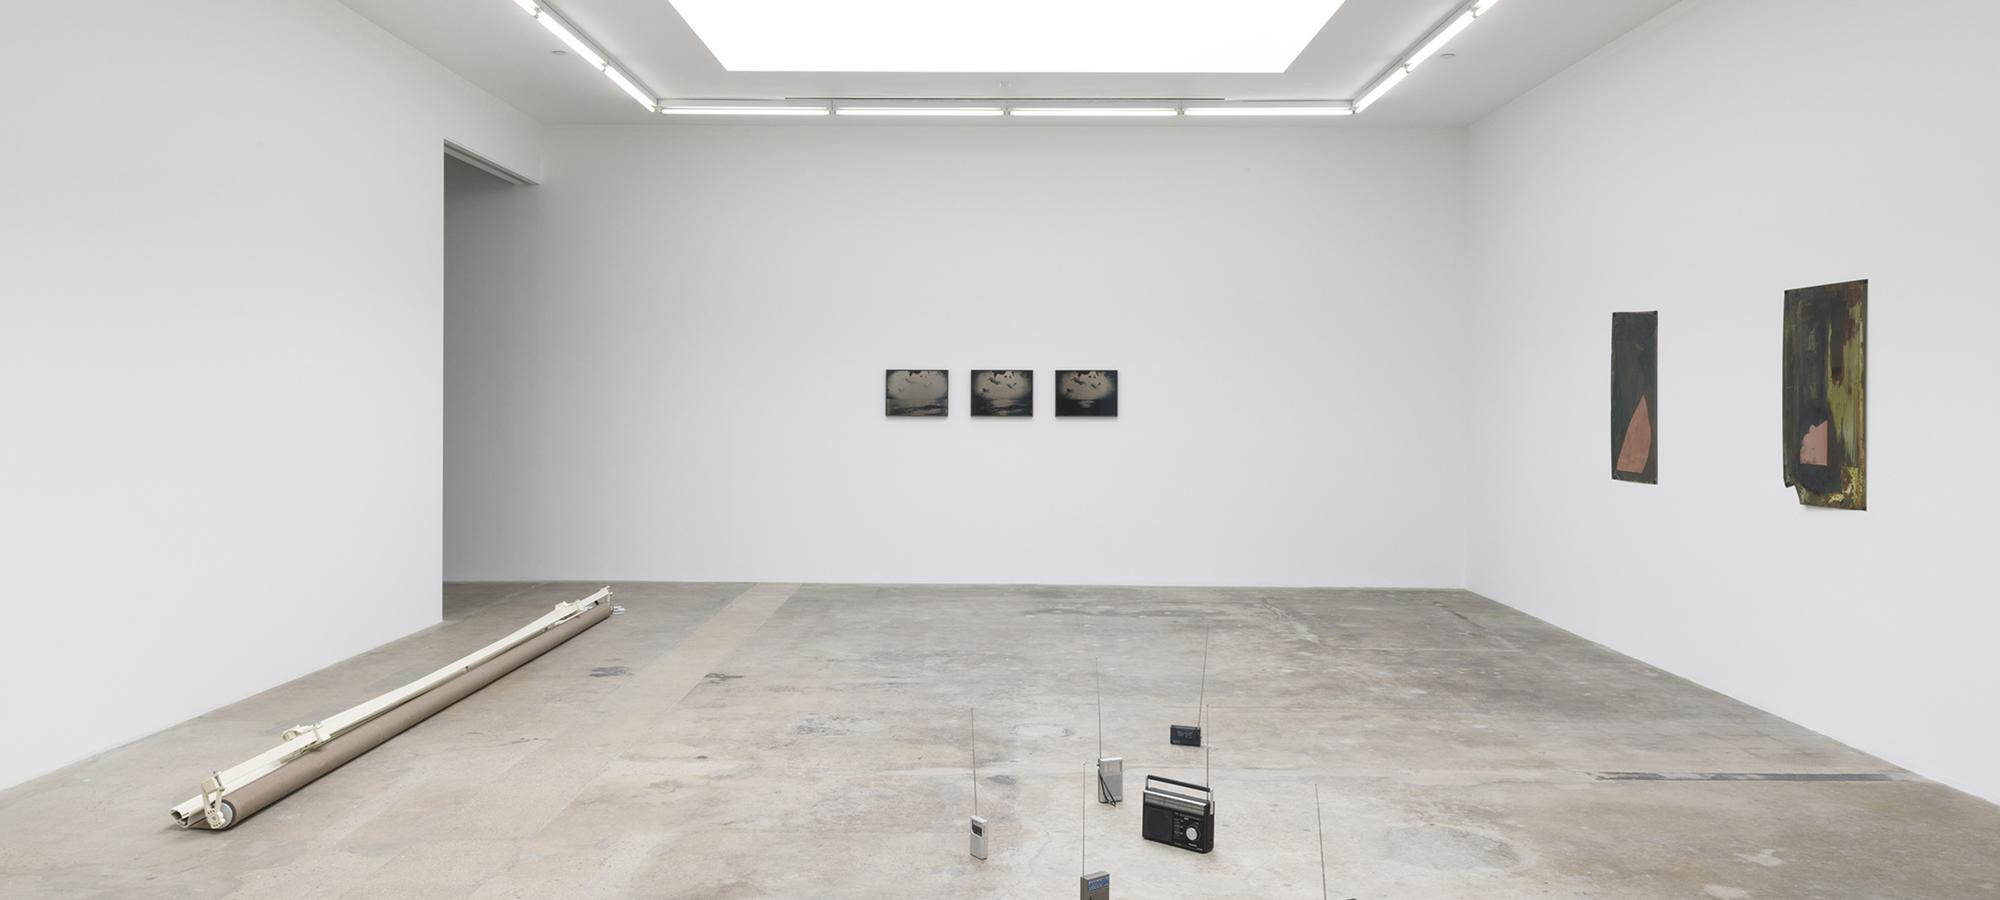 Installation view of Living in a lightbulb